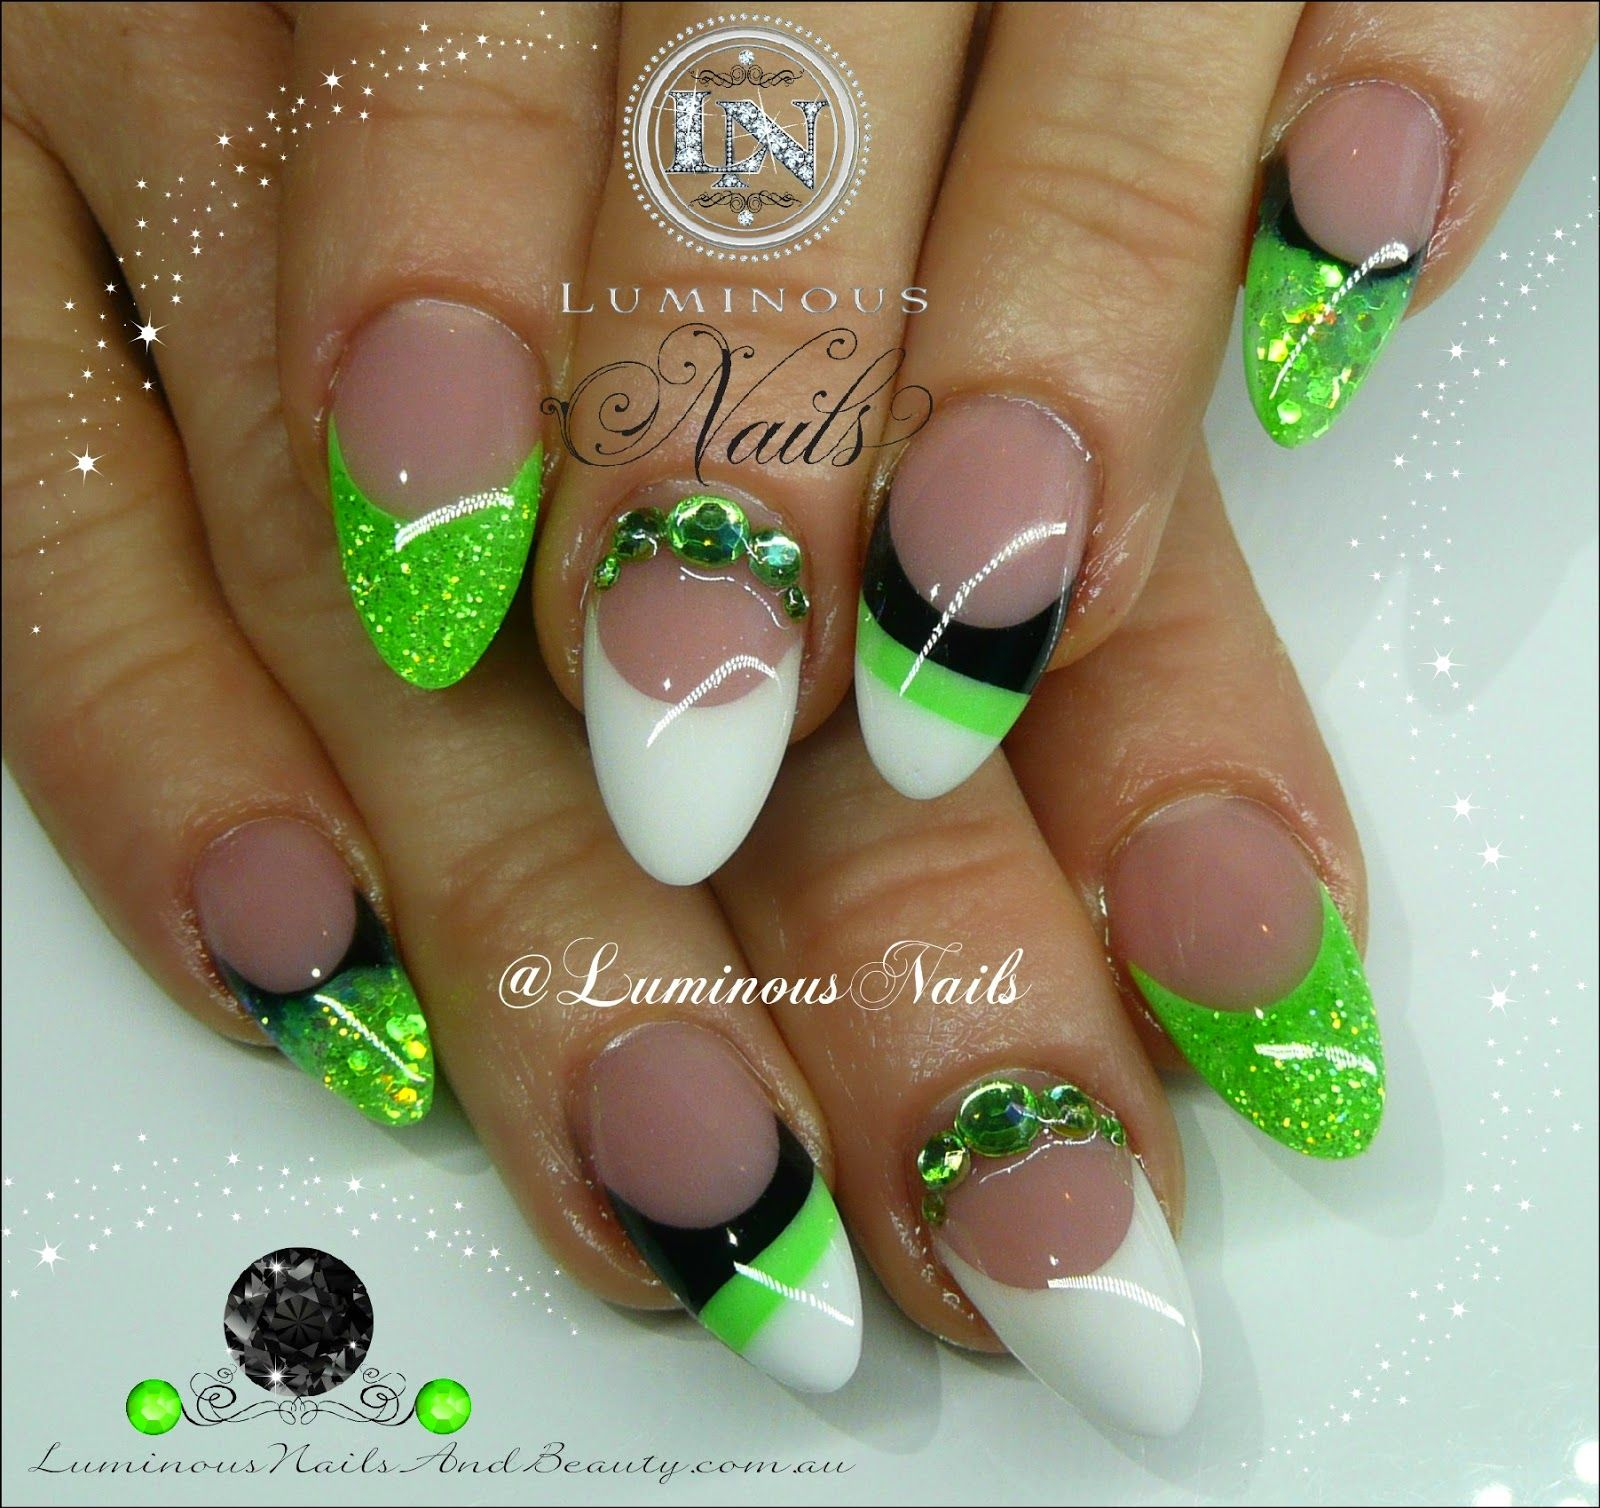 Luminous nails lime green white black nails nail lime white and black nail art first thought thesed be perfect for a tennis match or golf tournament luminous nails prinsesfo Choice Image